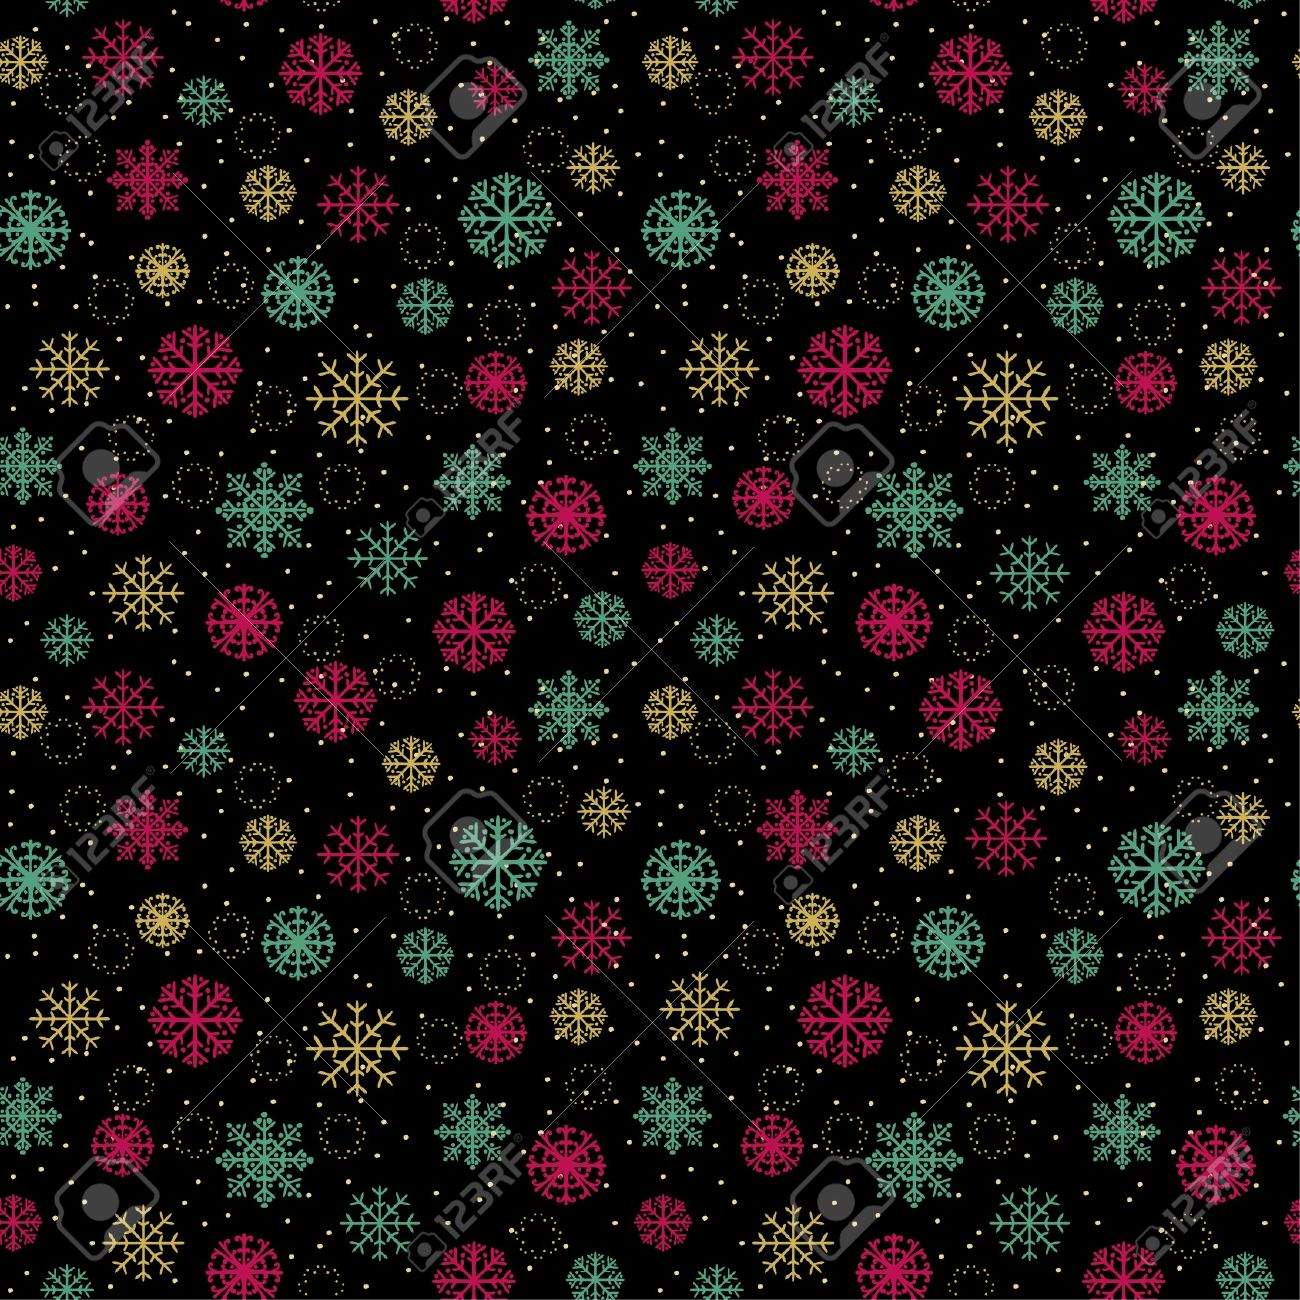 Decorative colorful seamless pattern with ornamental snowflakes  Endless festive texture  Template for design wrapping paper, textile, package, greeting cards Stock Vector - 16641614